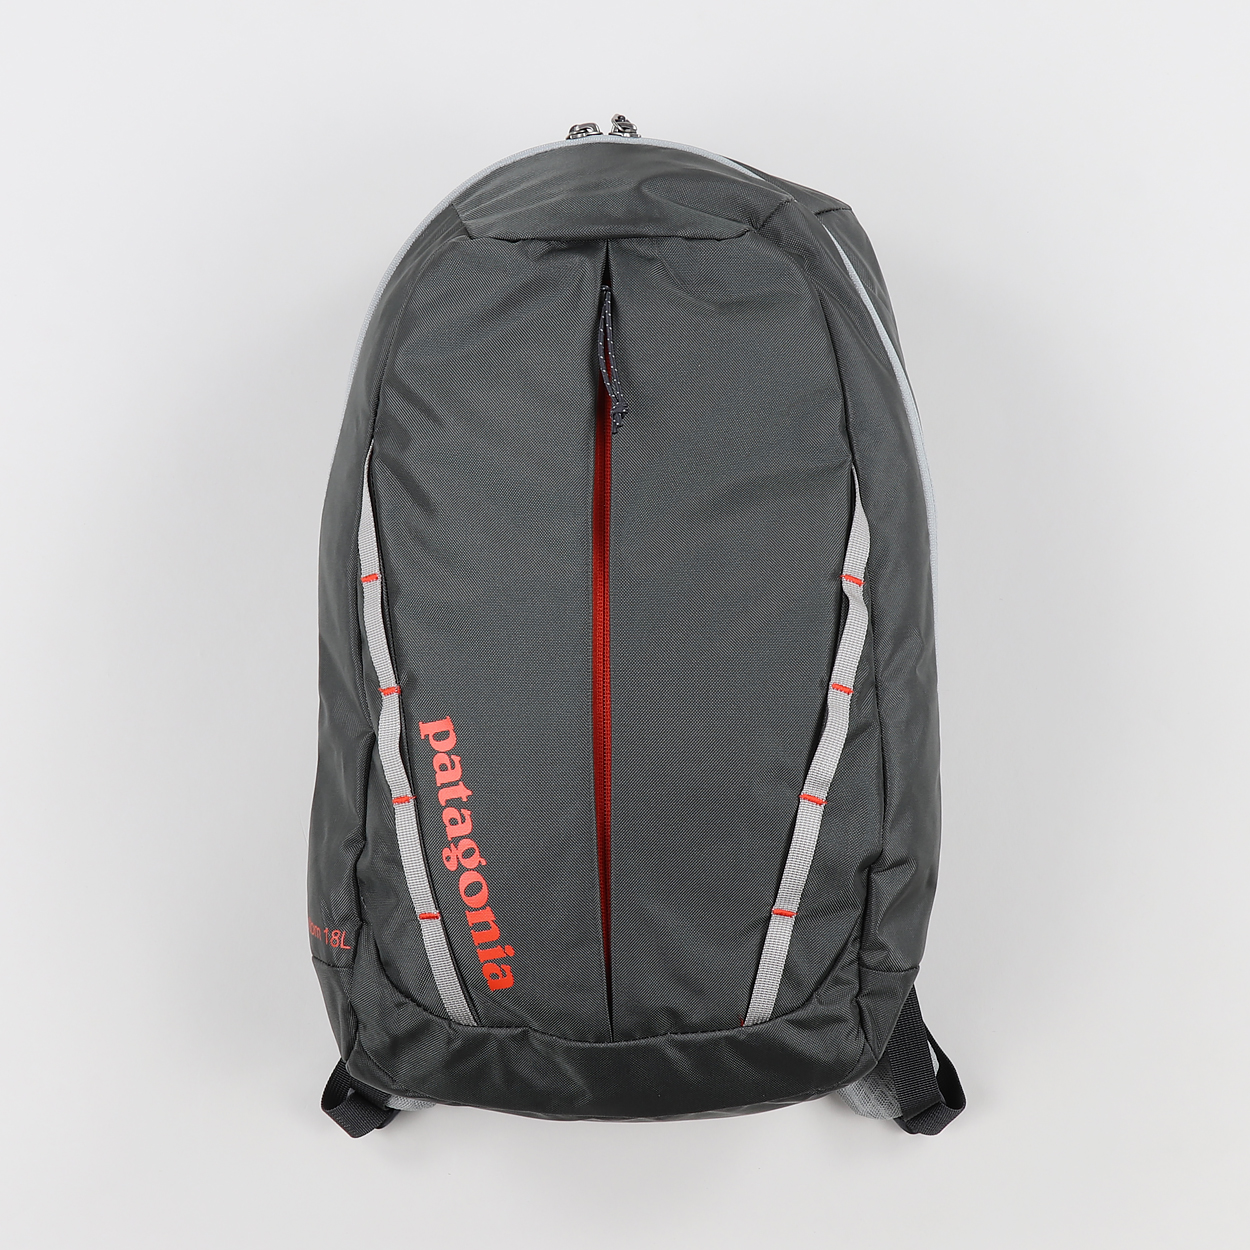 7f579be2588 The Atom pack is a classic backpack for any situation. The bag features a  tough build, a generous 18 litre capacity and pure Patagonia style!